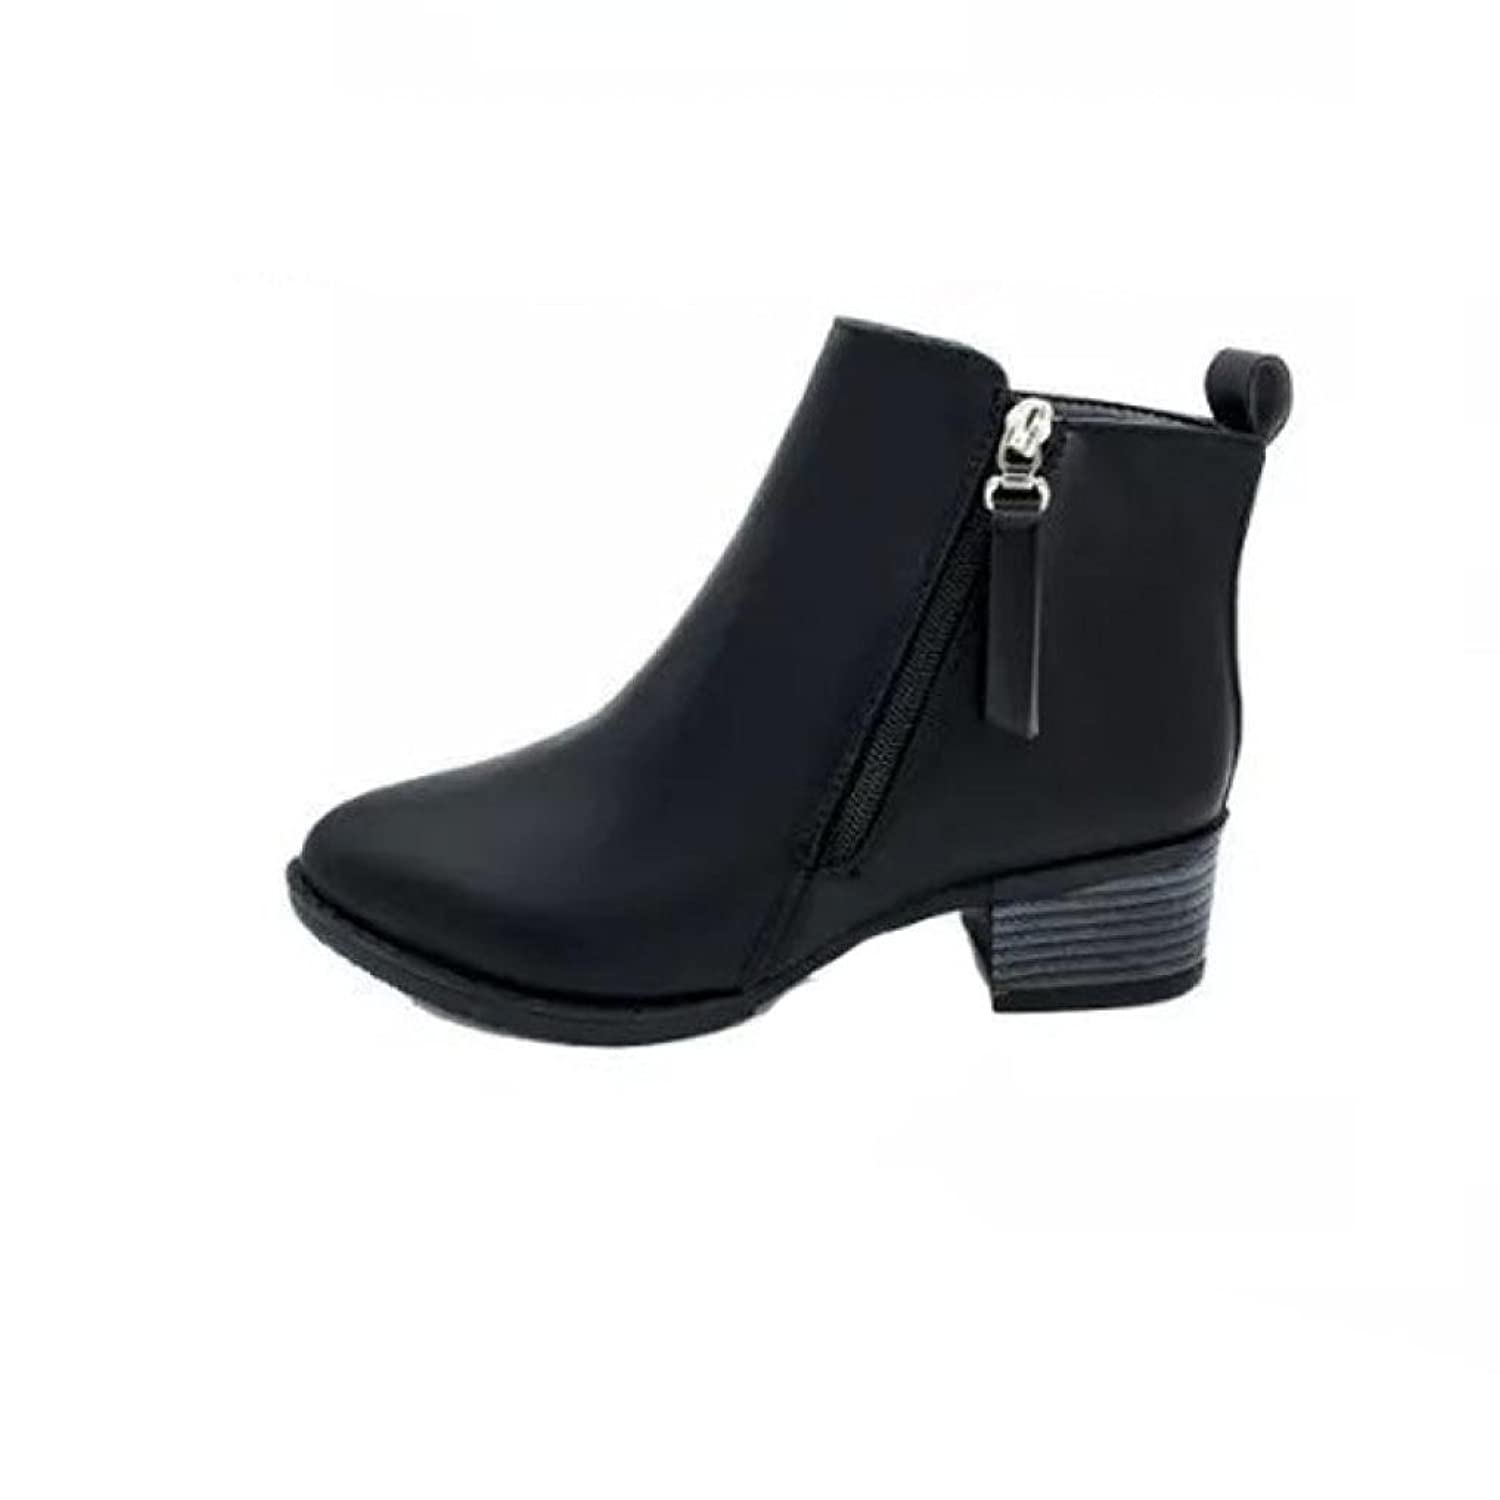 ☆ ▷ ♤ Pretty Women Vintage Fashion Ankle Side Zipper Boots